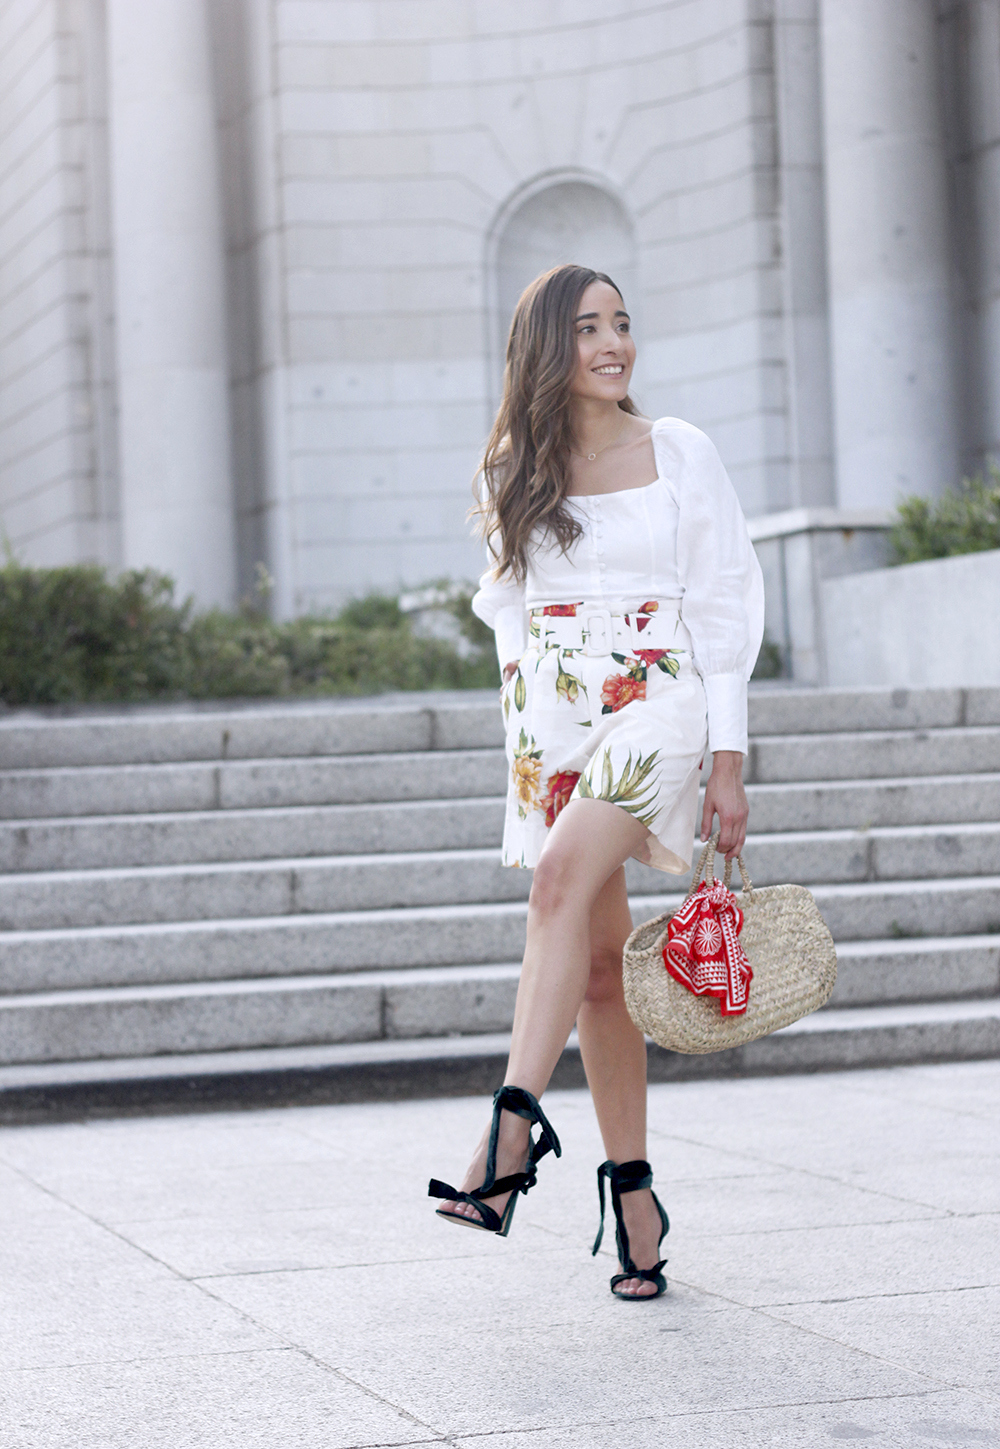 floral print shorts linnen top suede heels street style summer outfit 20198